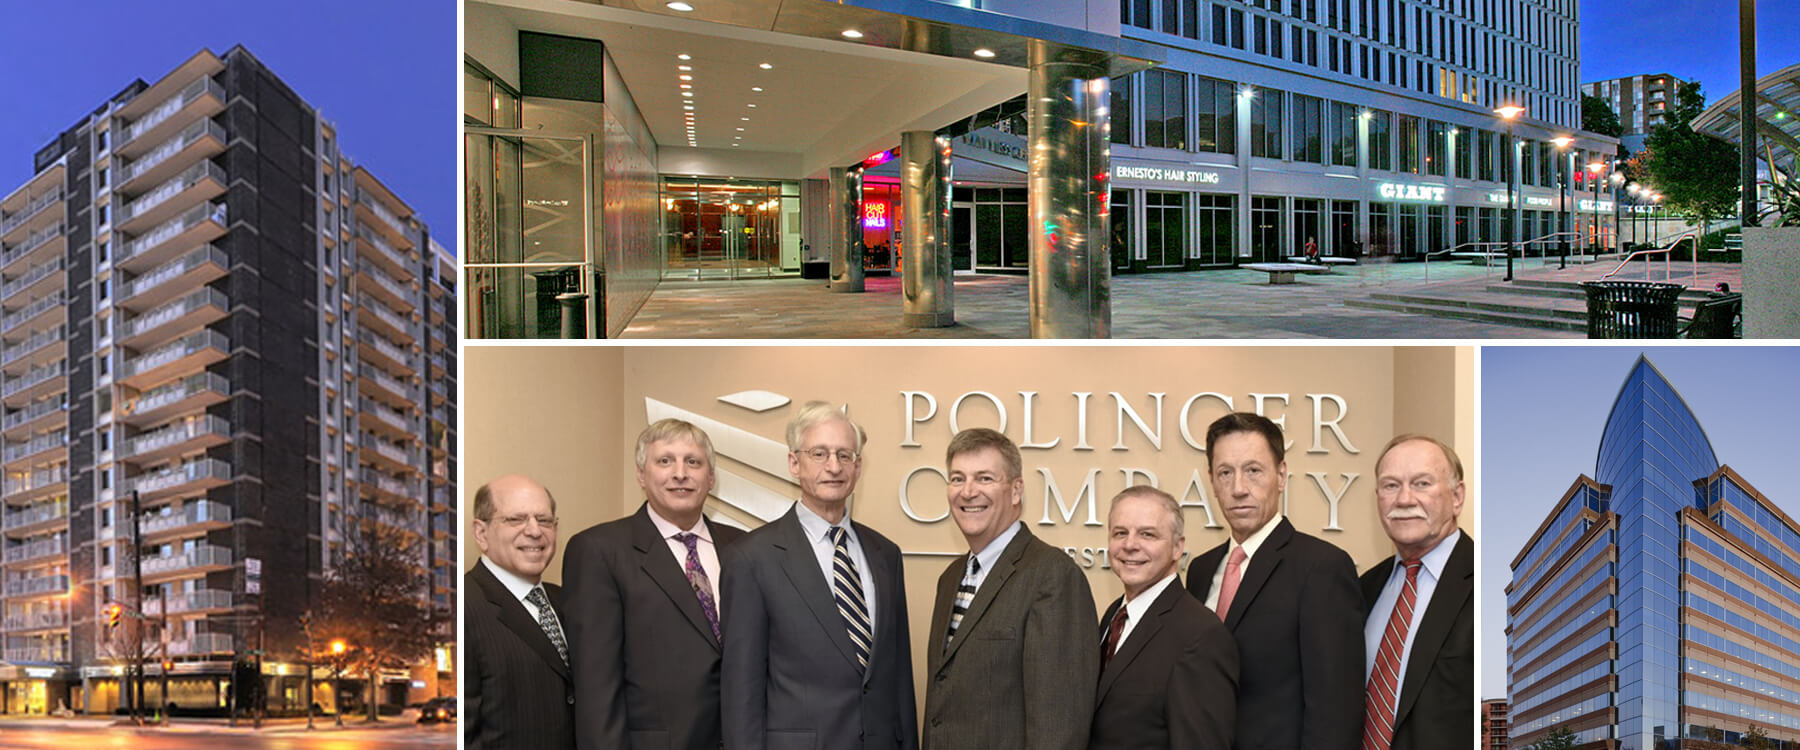 Polinger Company Leadership Team